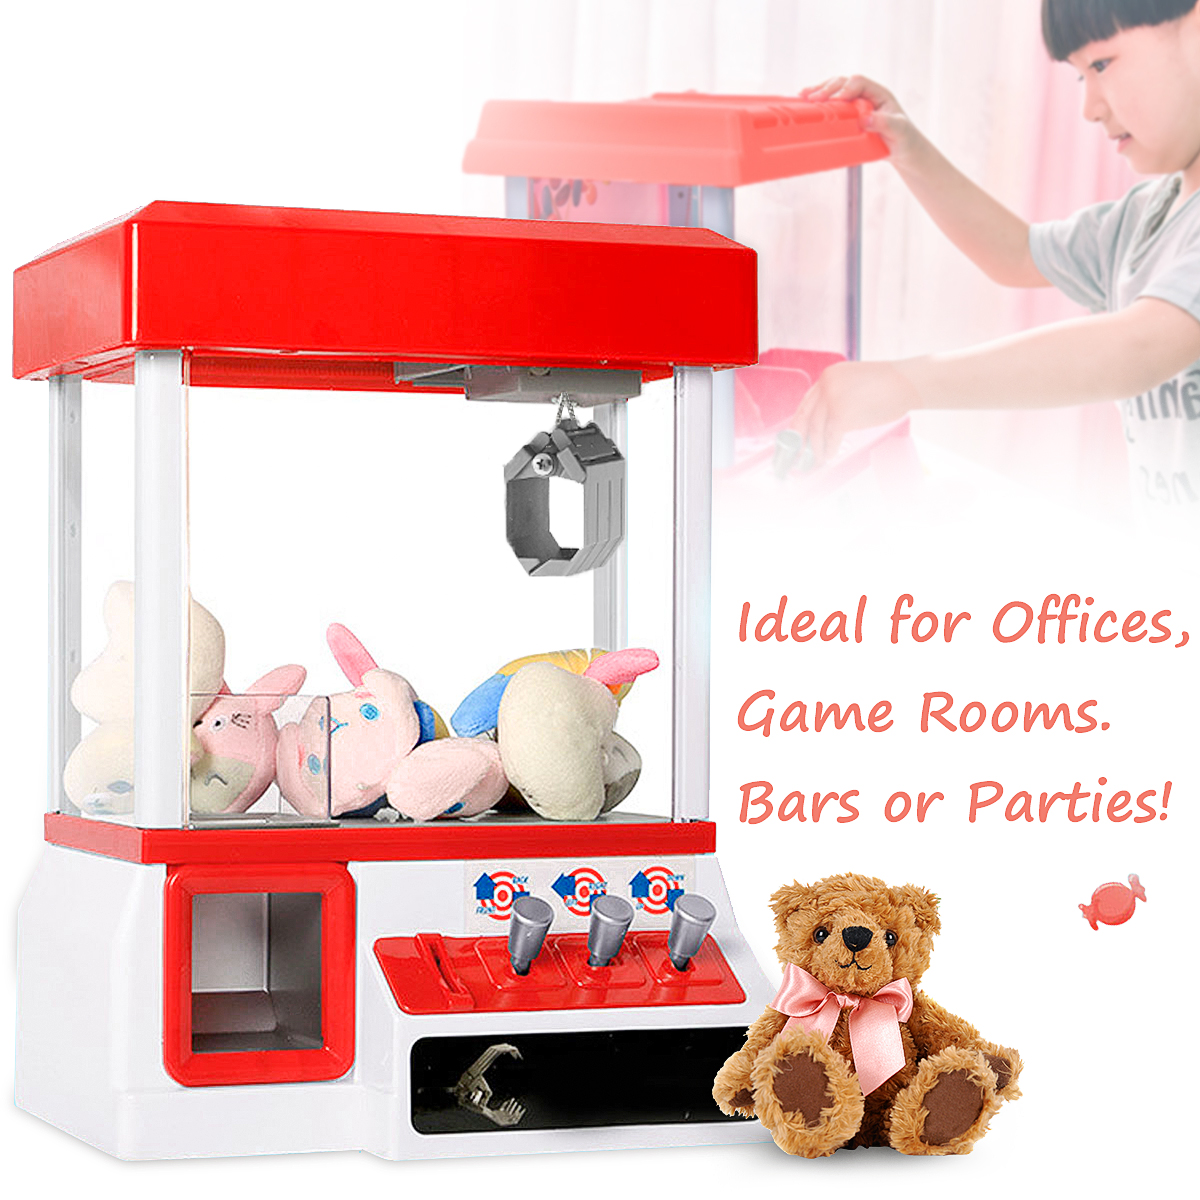 Prize Machine Game Kids Toy Carnival Style Vending Arcade Claw Candy Grabber Coin Operated Games high quality electronic coin operated amusement park equipment kids children video arcade game machine for sale